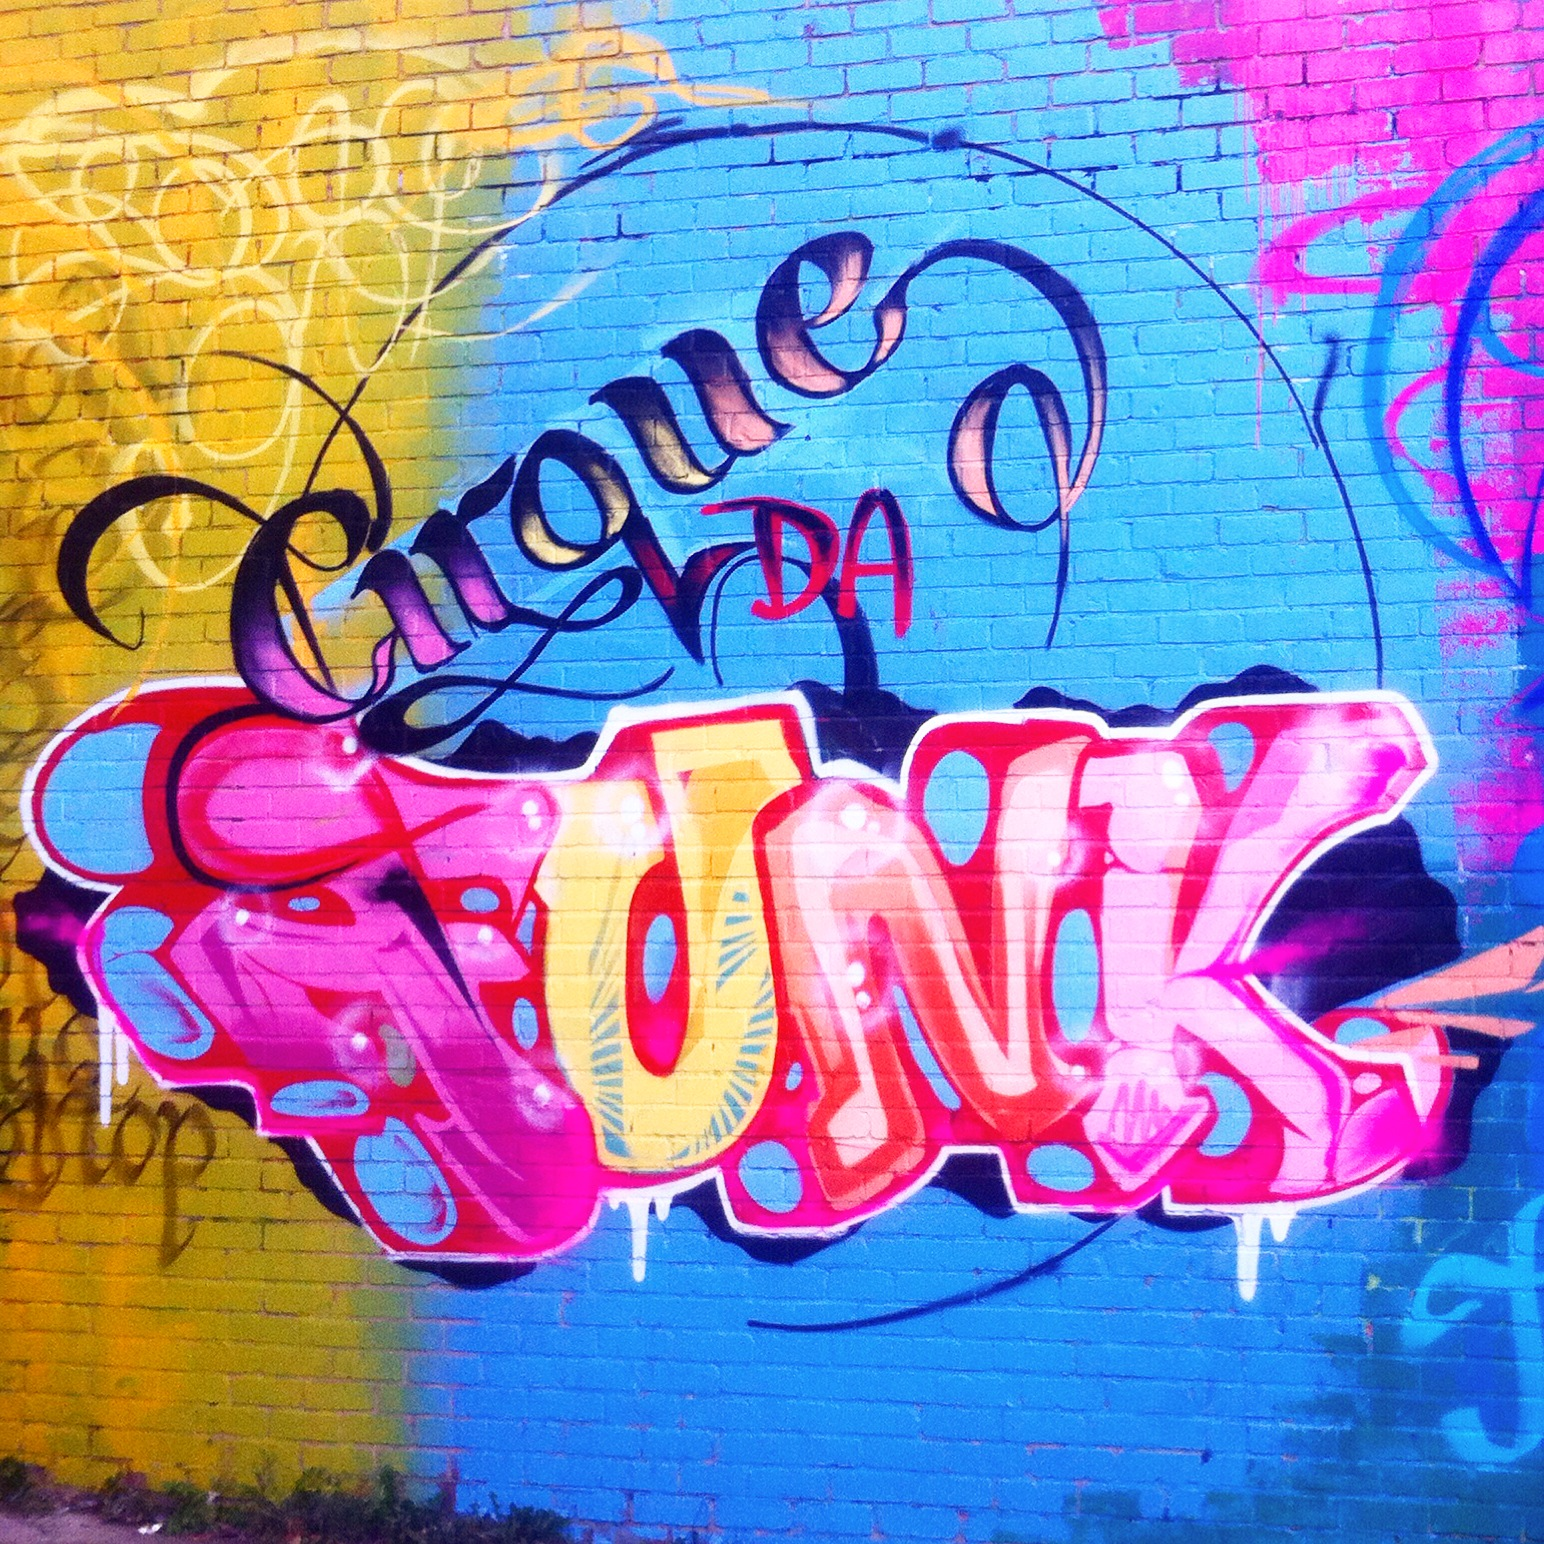 Cirque da Funk graffiti text